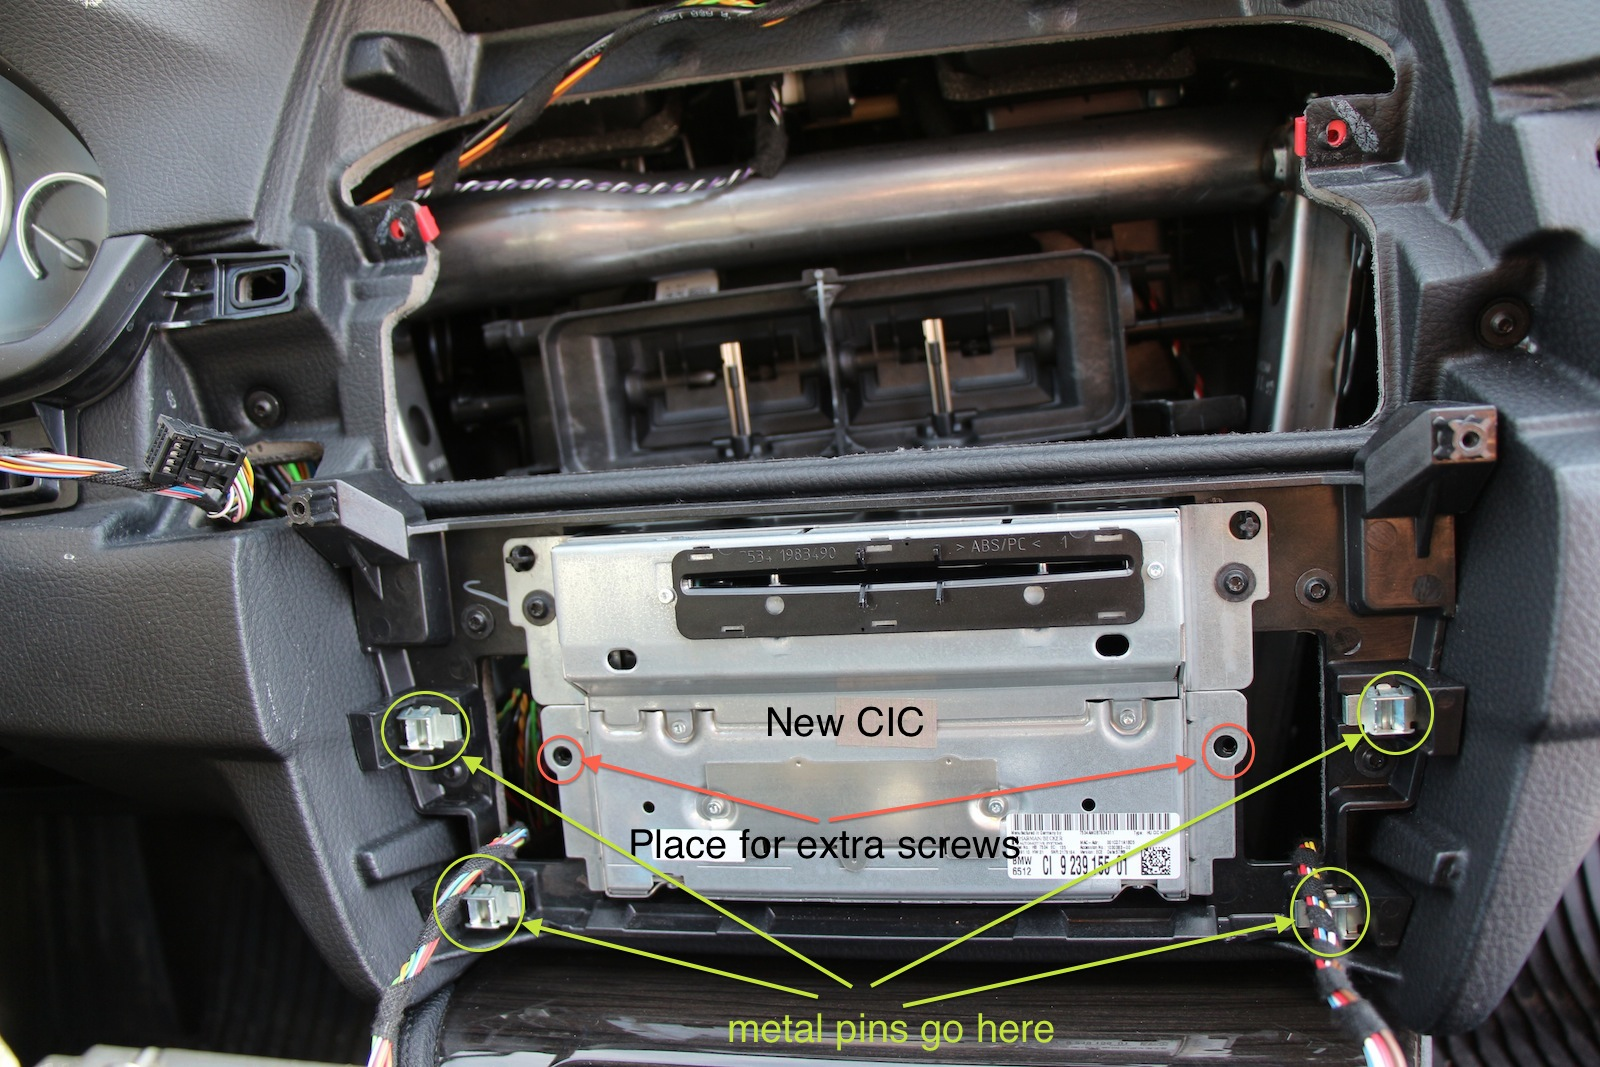 Retrofitting Navigation on my F10 - 2010 2011 BMW 5 Series